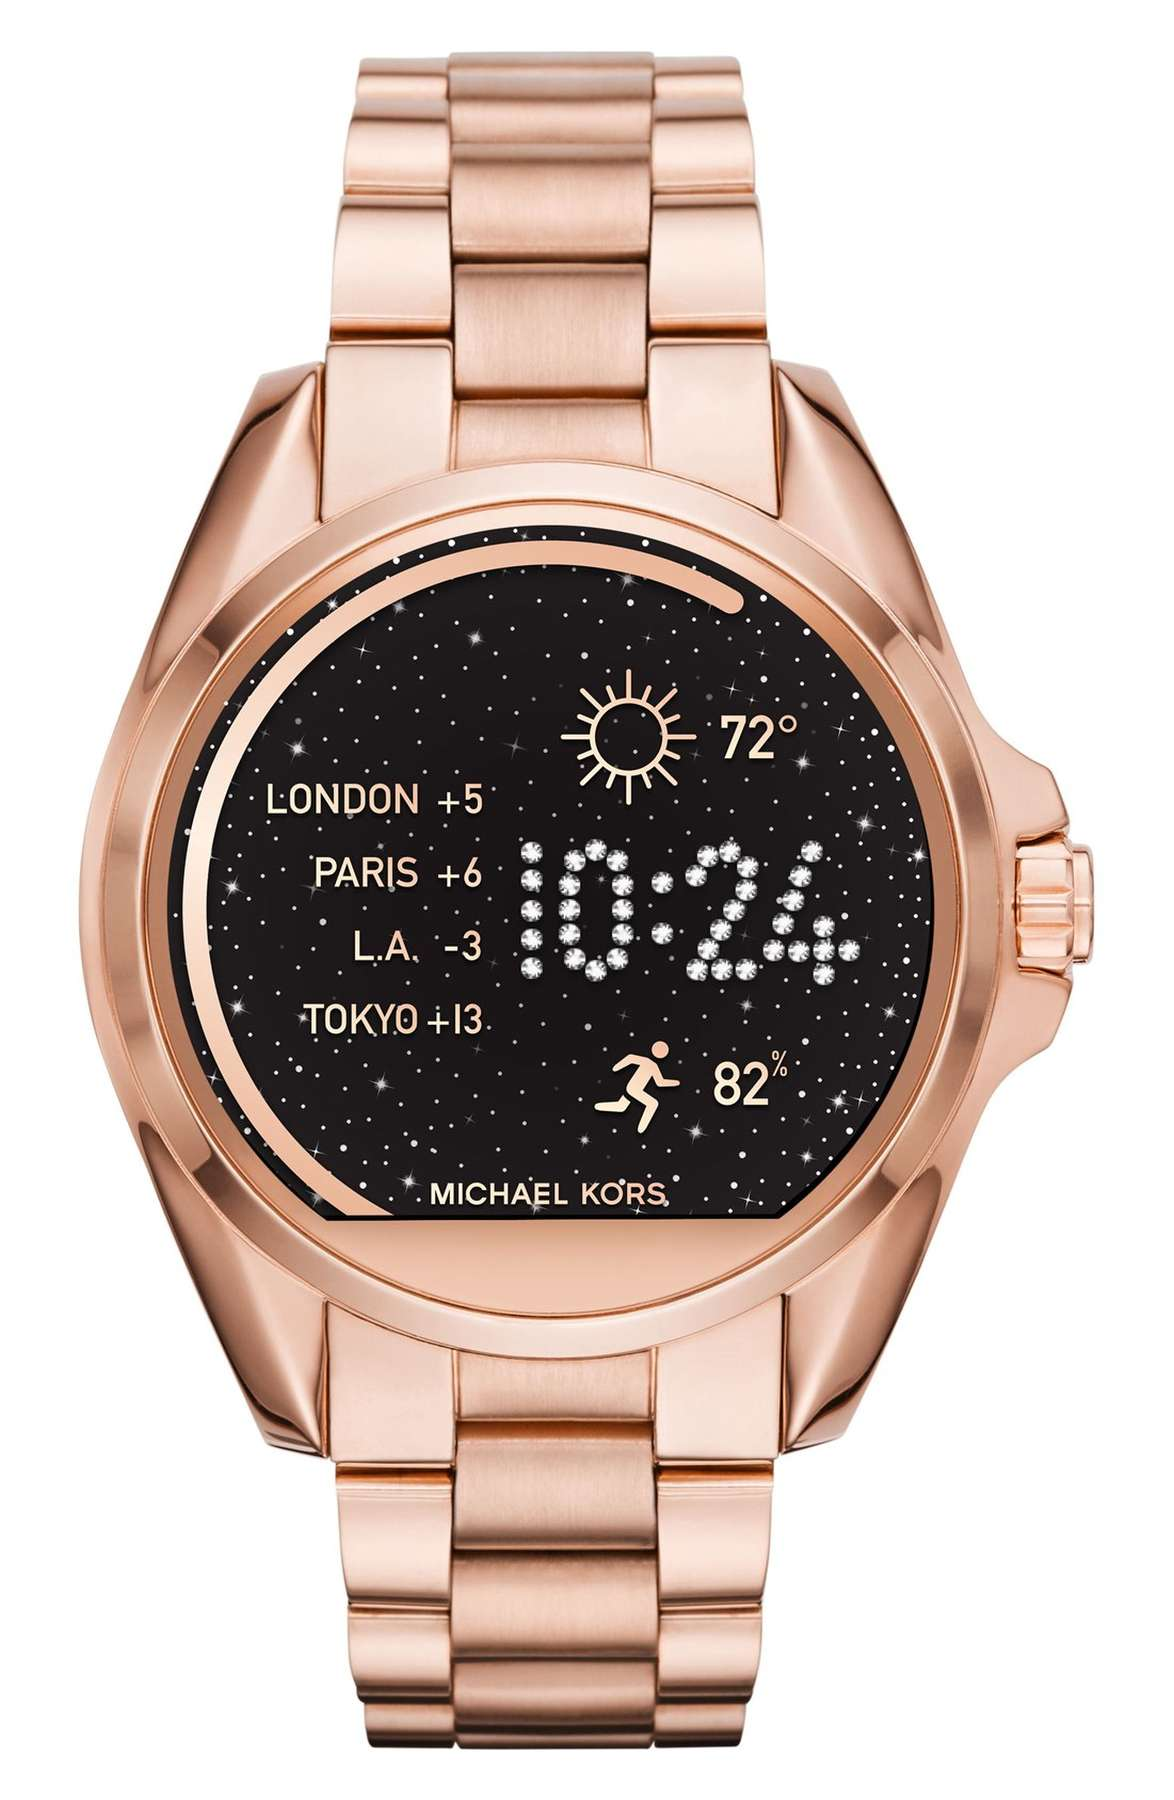 Michael Kors Bradshaw Access Bracelet Smart Watch